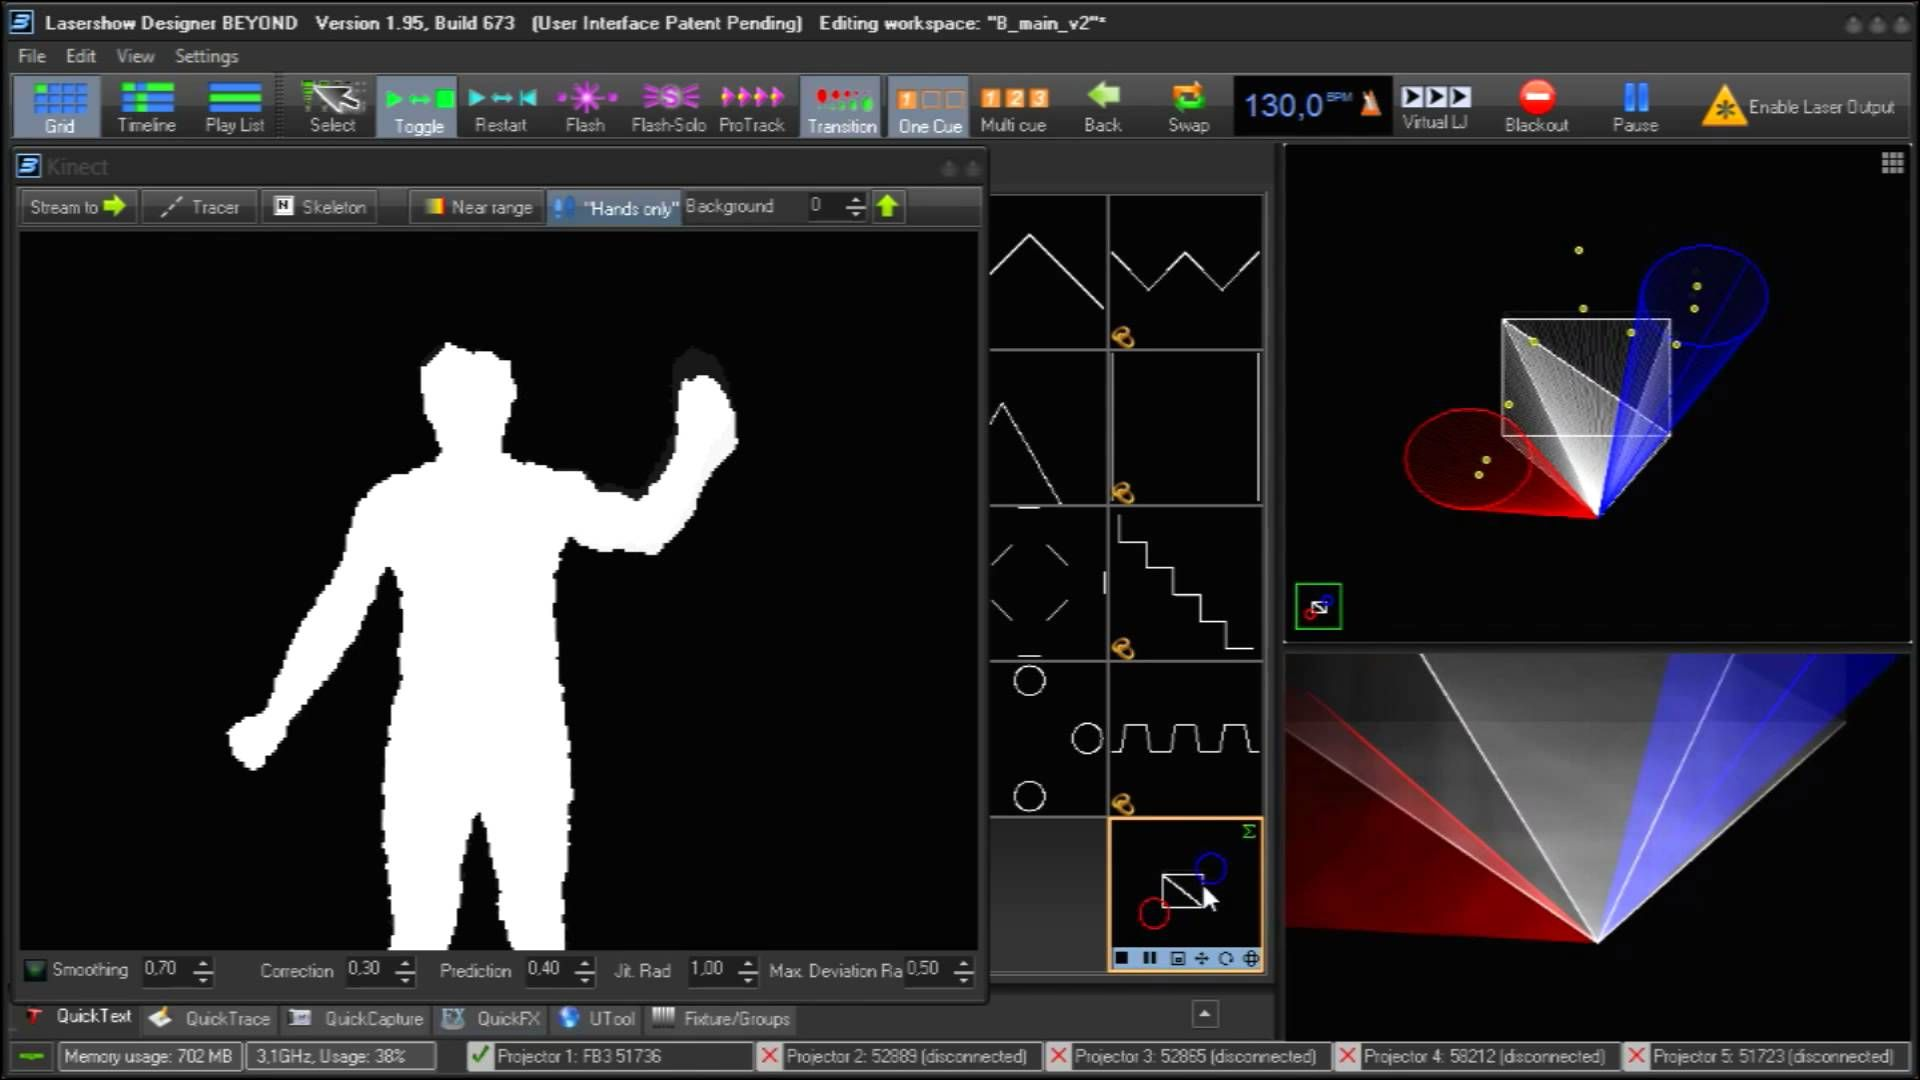 BEYOND Tutorial - Using BEYOND Software with the X-Box Kinect